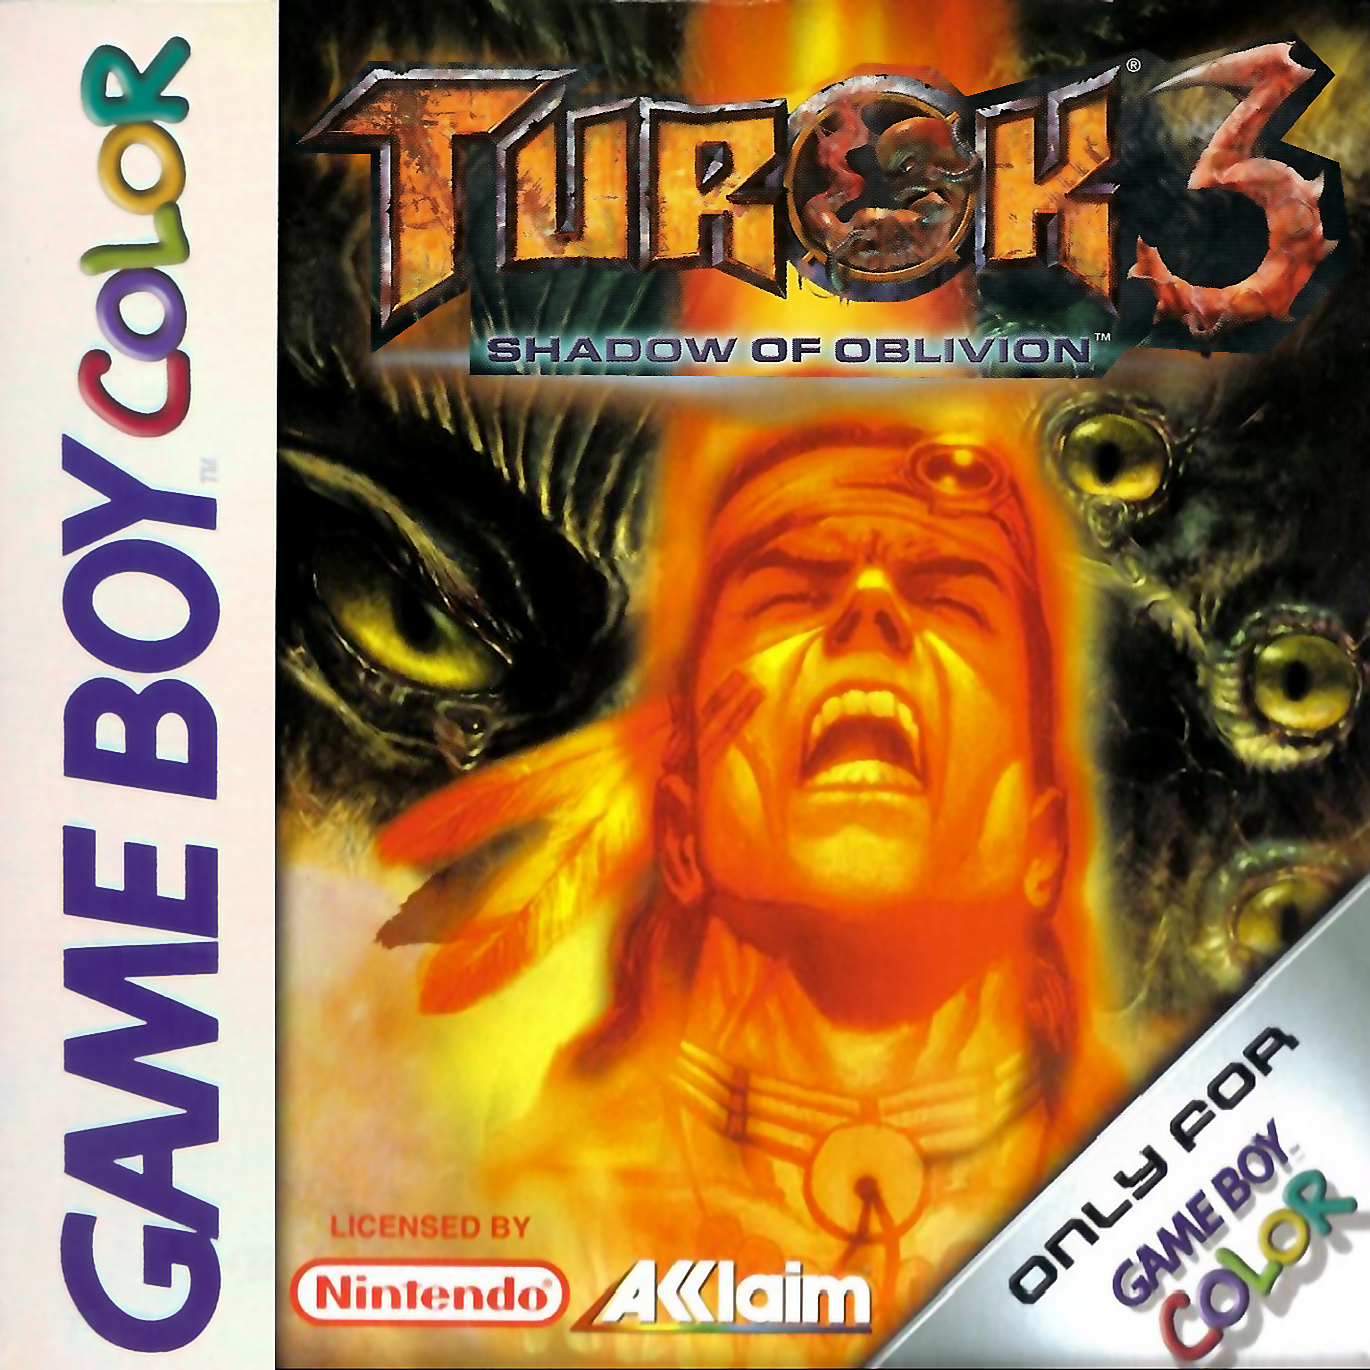 Turok 3 - Shadow of Oblivion Nintendo Game Boy Color cover artwork